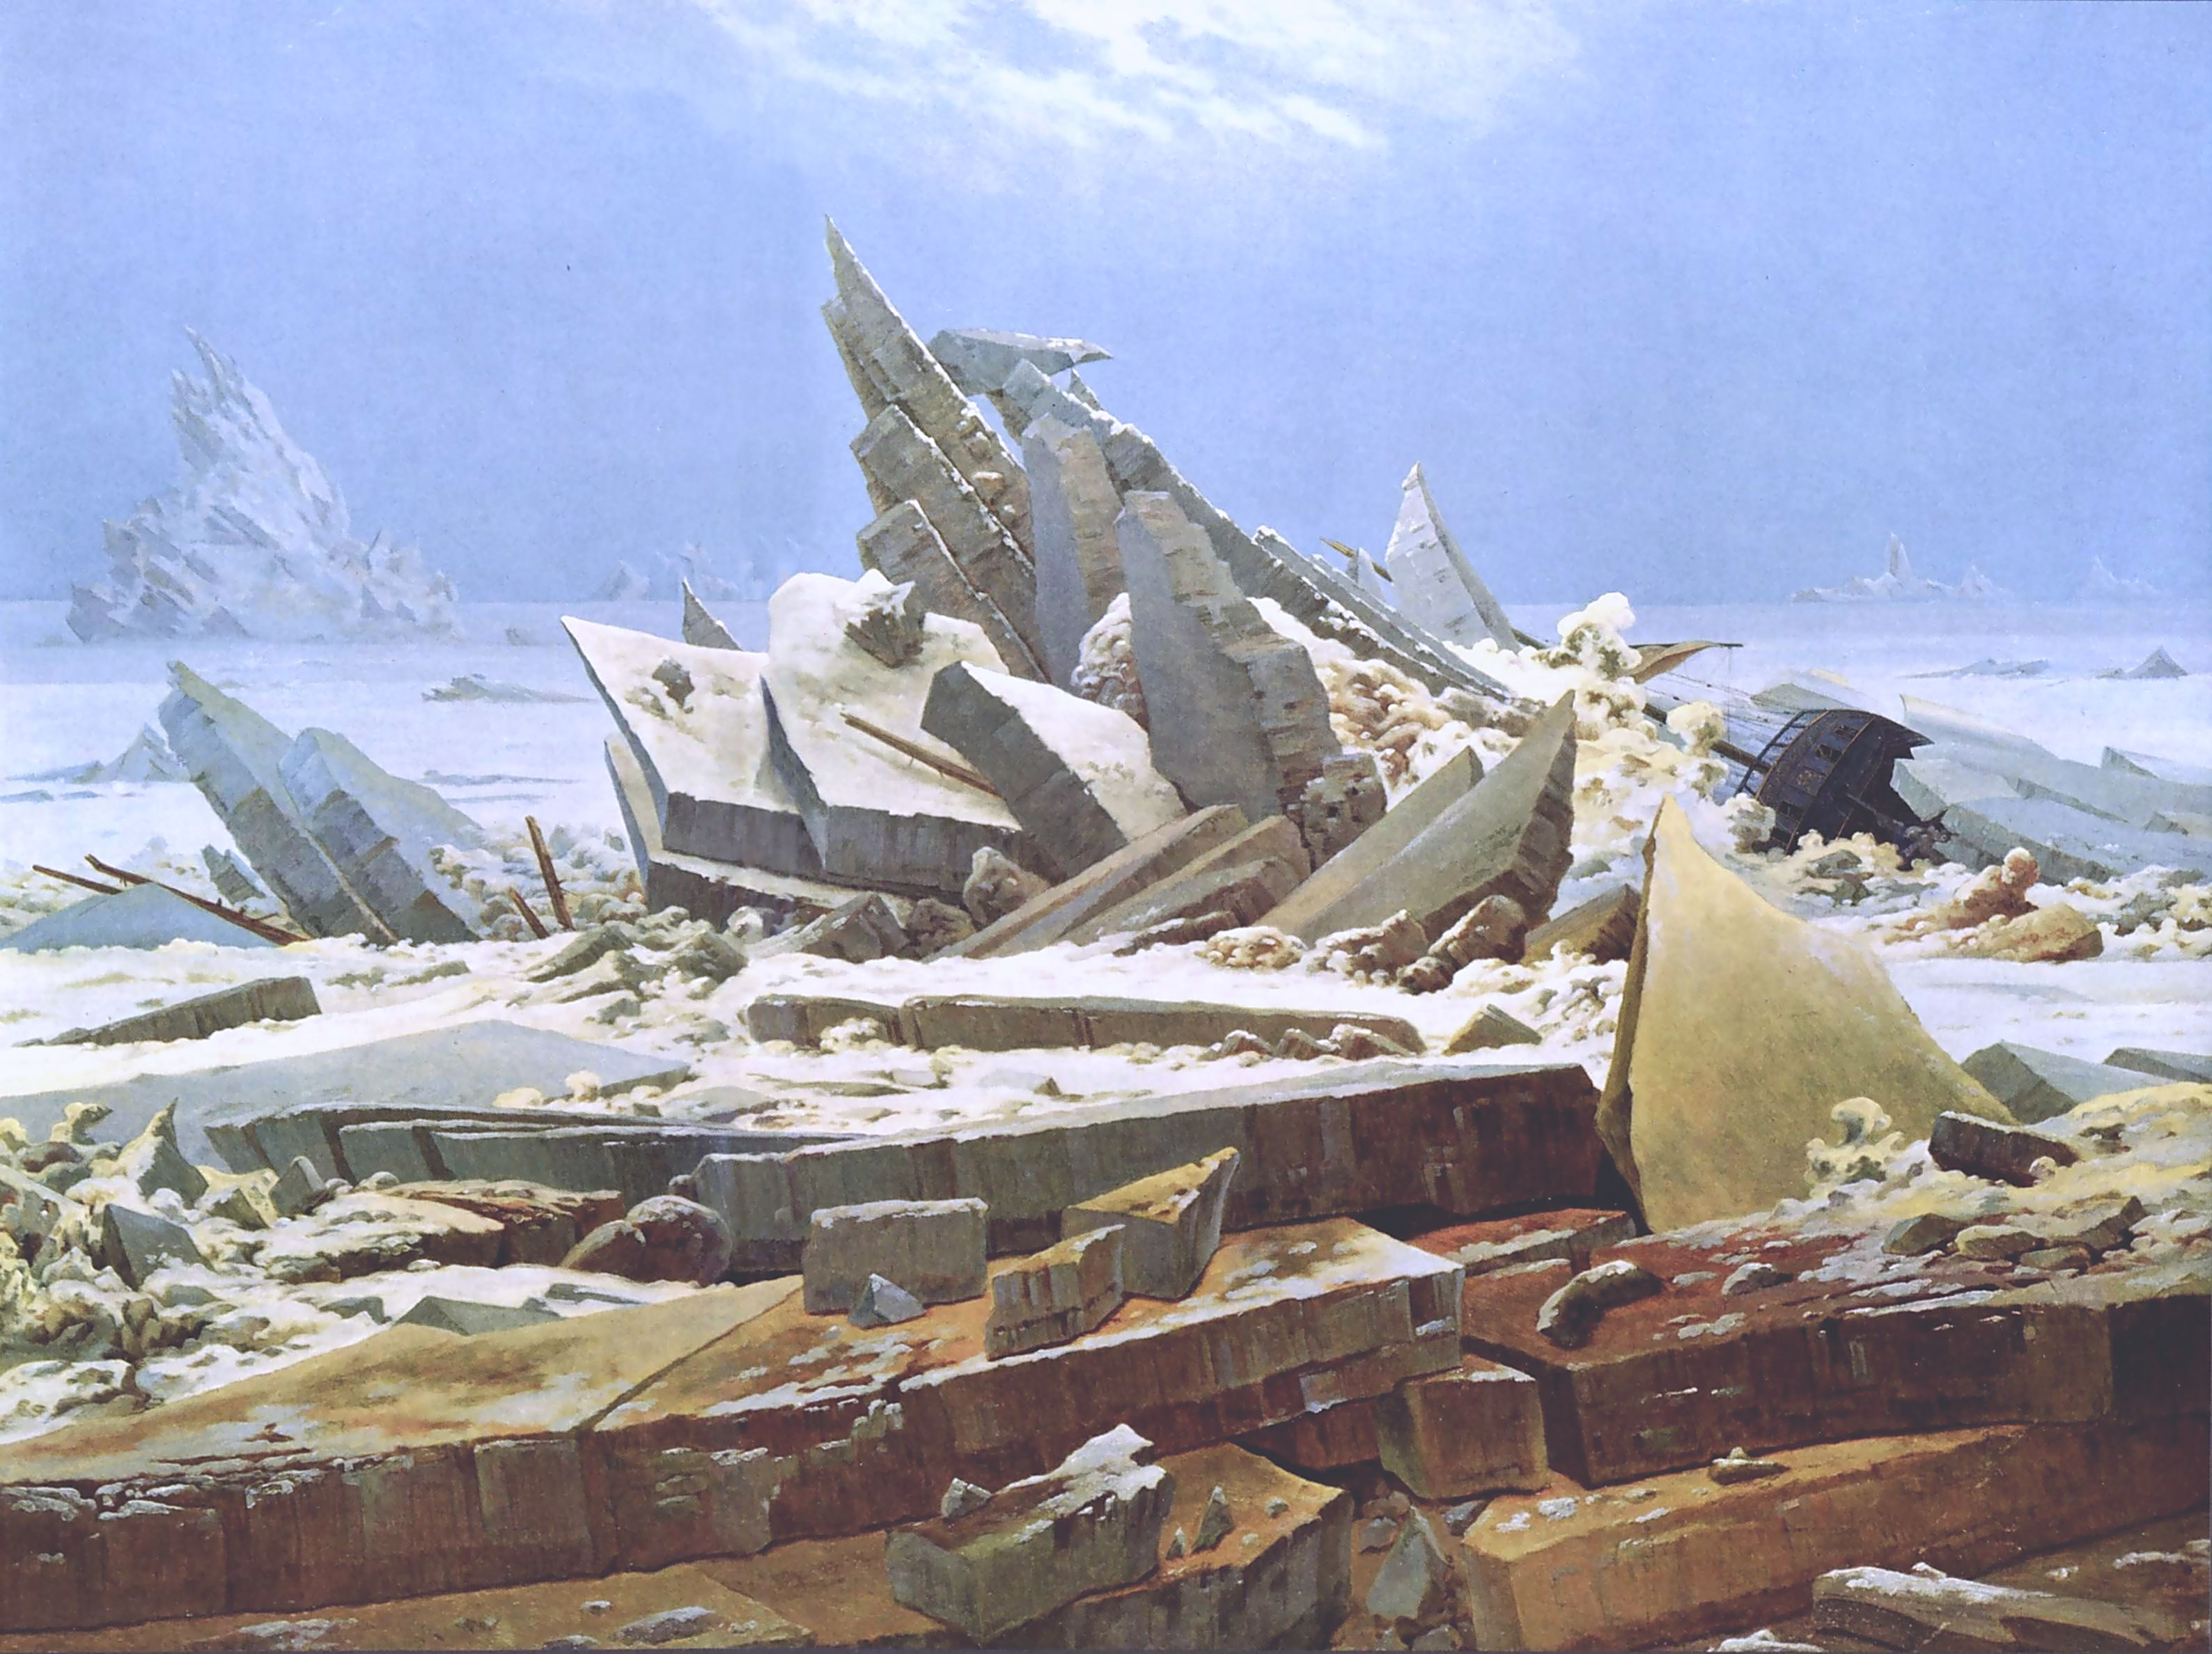 https://i2.wp.com/upload.wikimedia.org/wikipedia/commons/0/0c/Caspar_David_Friedrich_-_Das_Eismeer_-_Hamburger_Kunsthalle_-_02.jpg